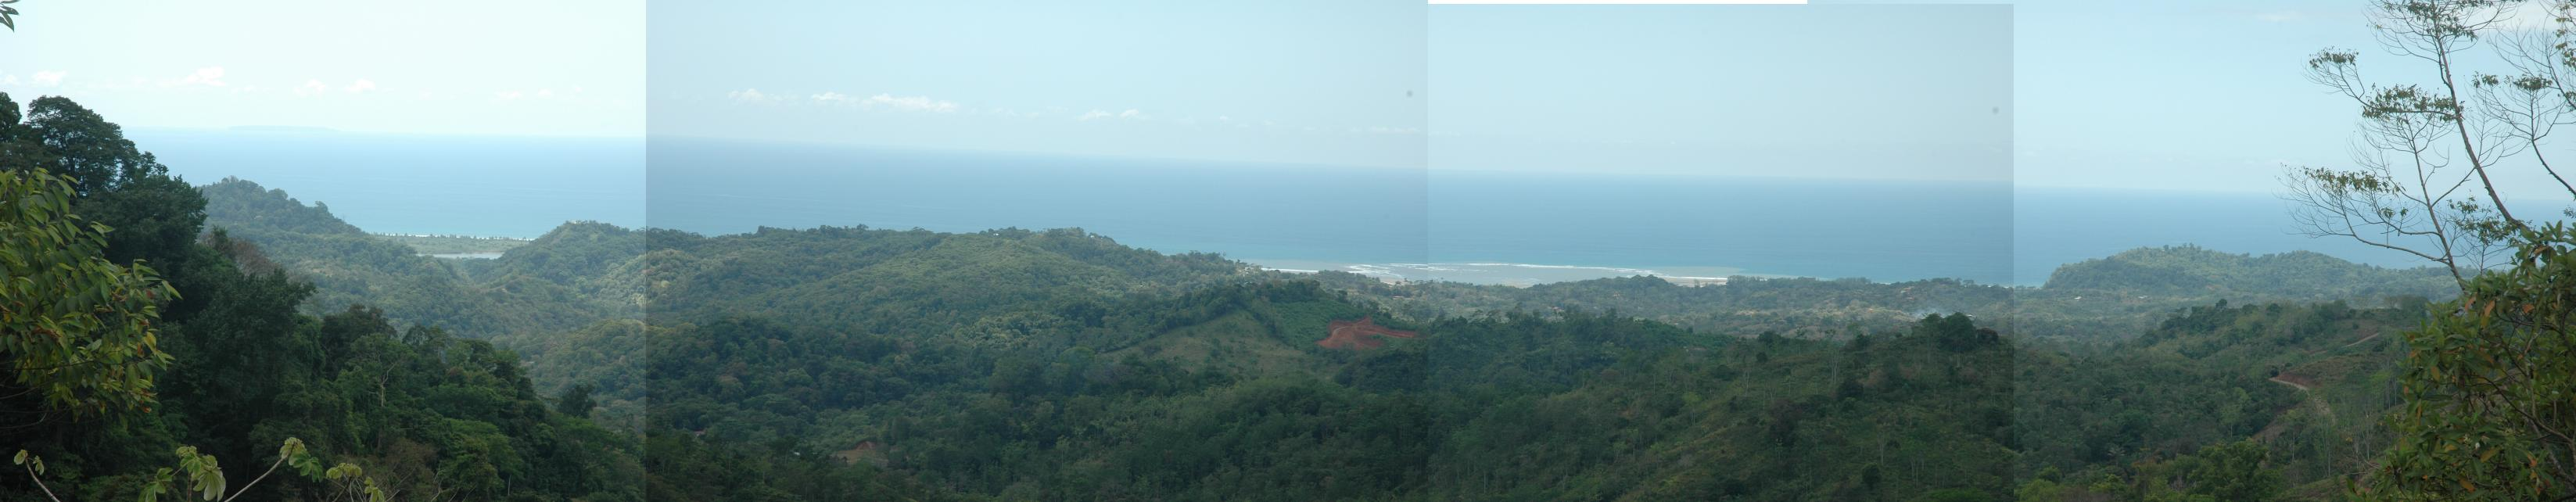 69 ACRE - Spectacular Ocean View Property Near Ojochal